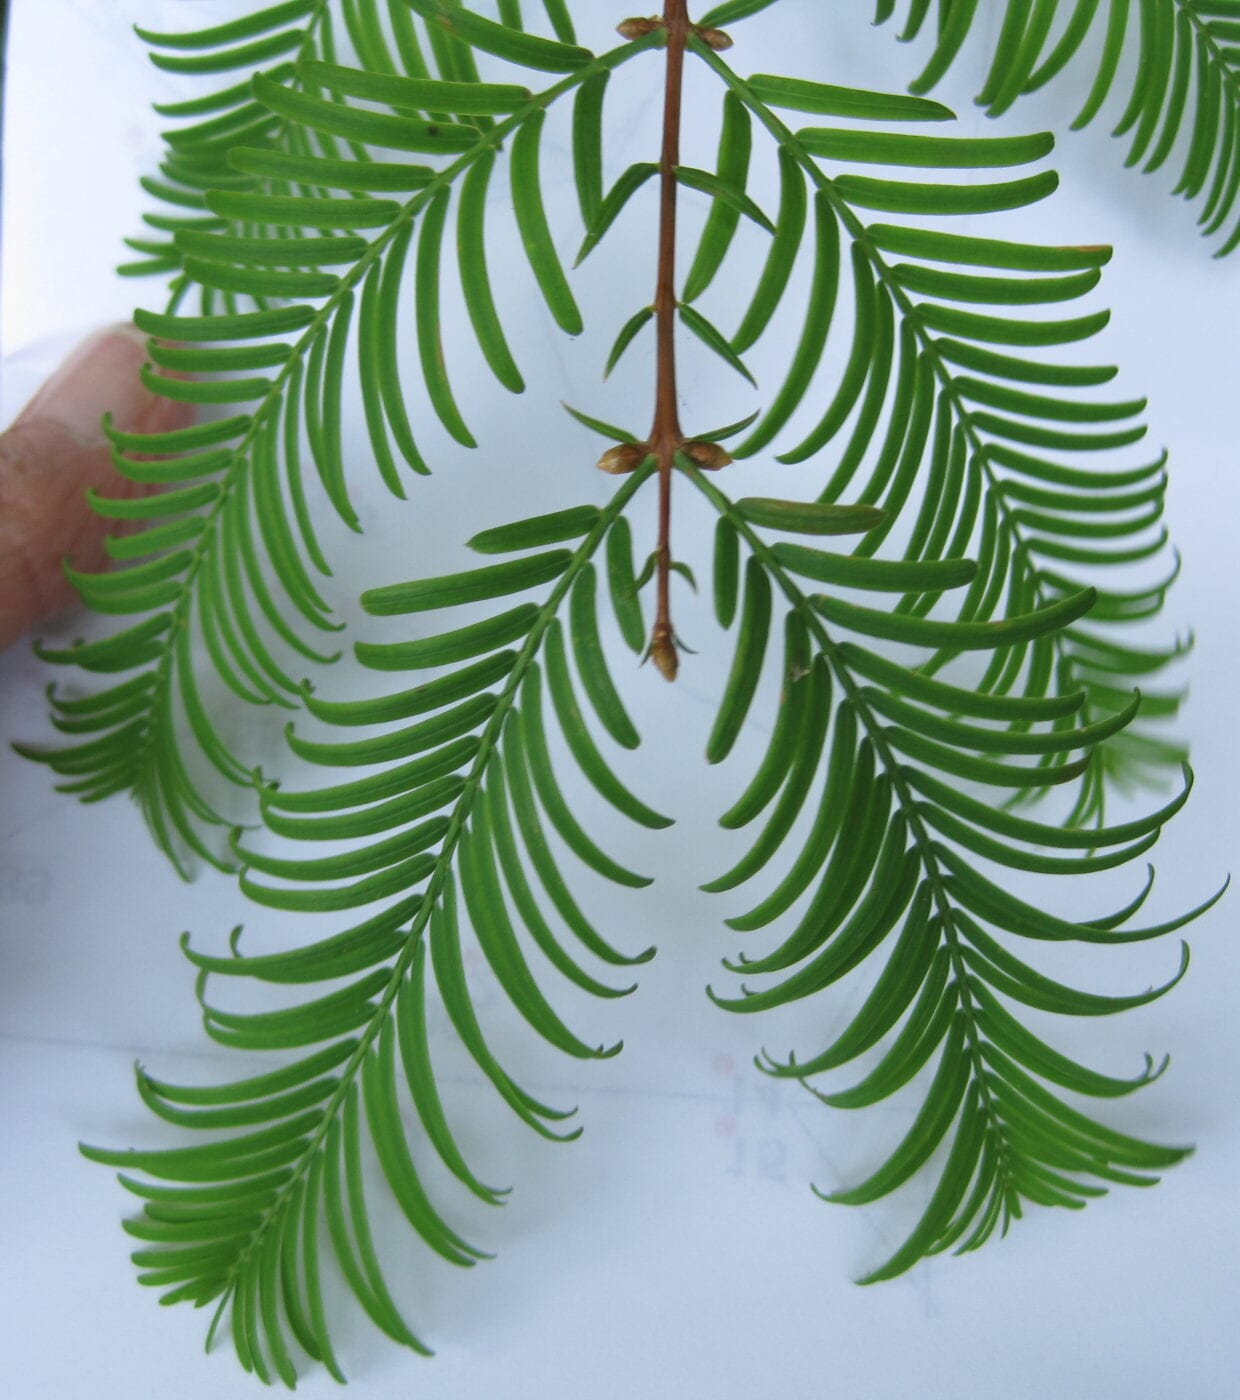 Dawn Redwood opposite leaves and shoots